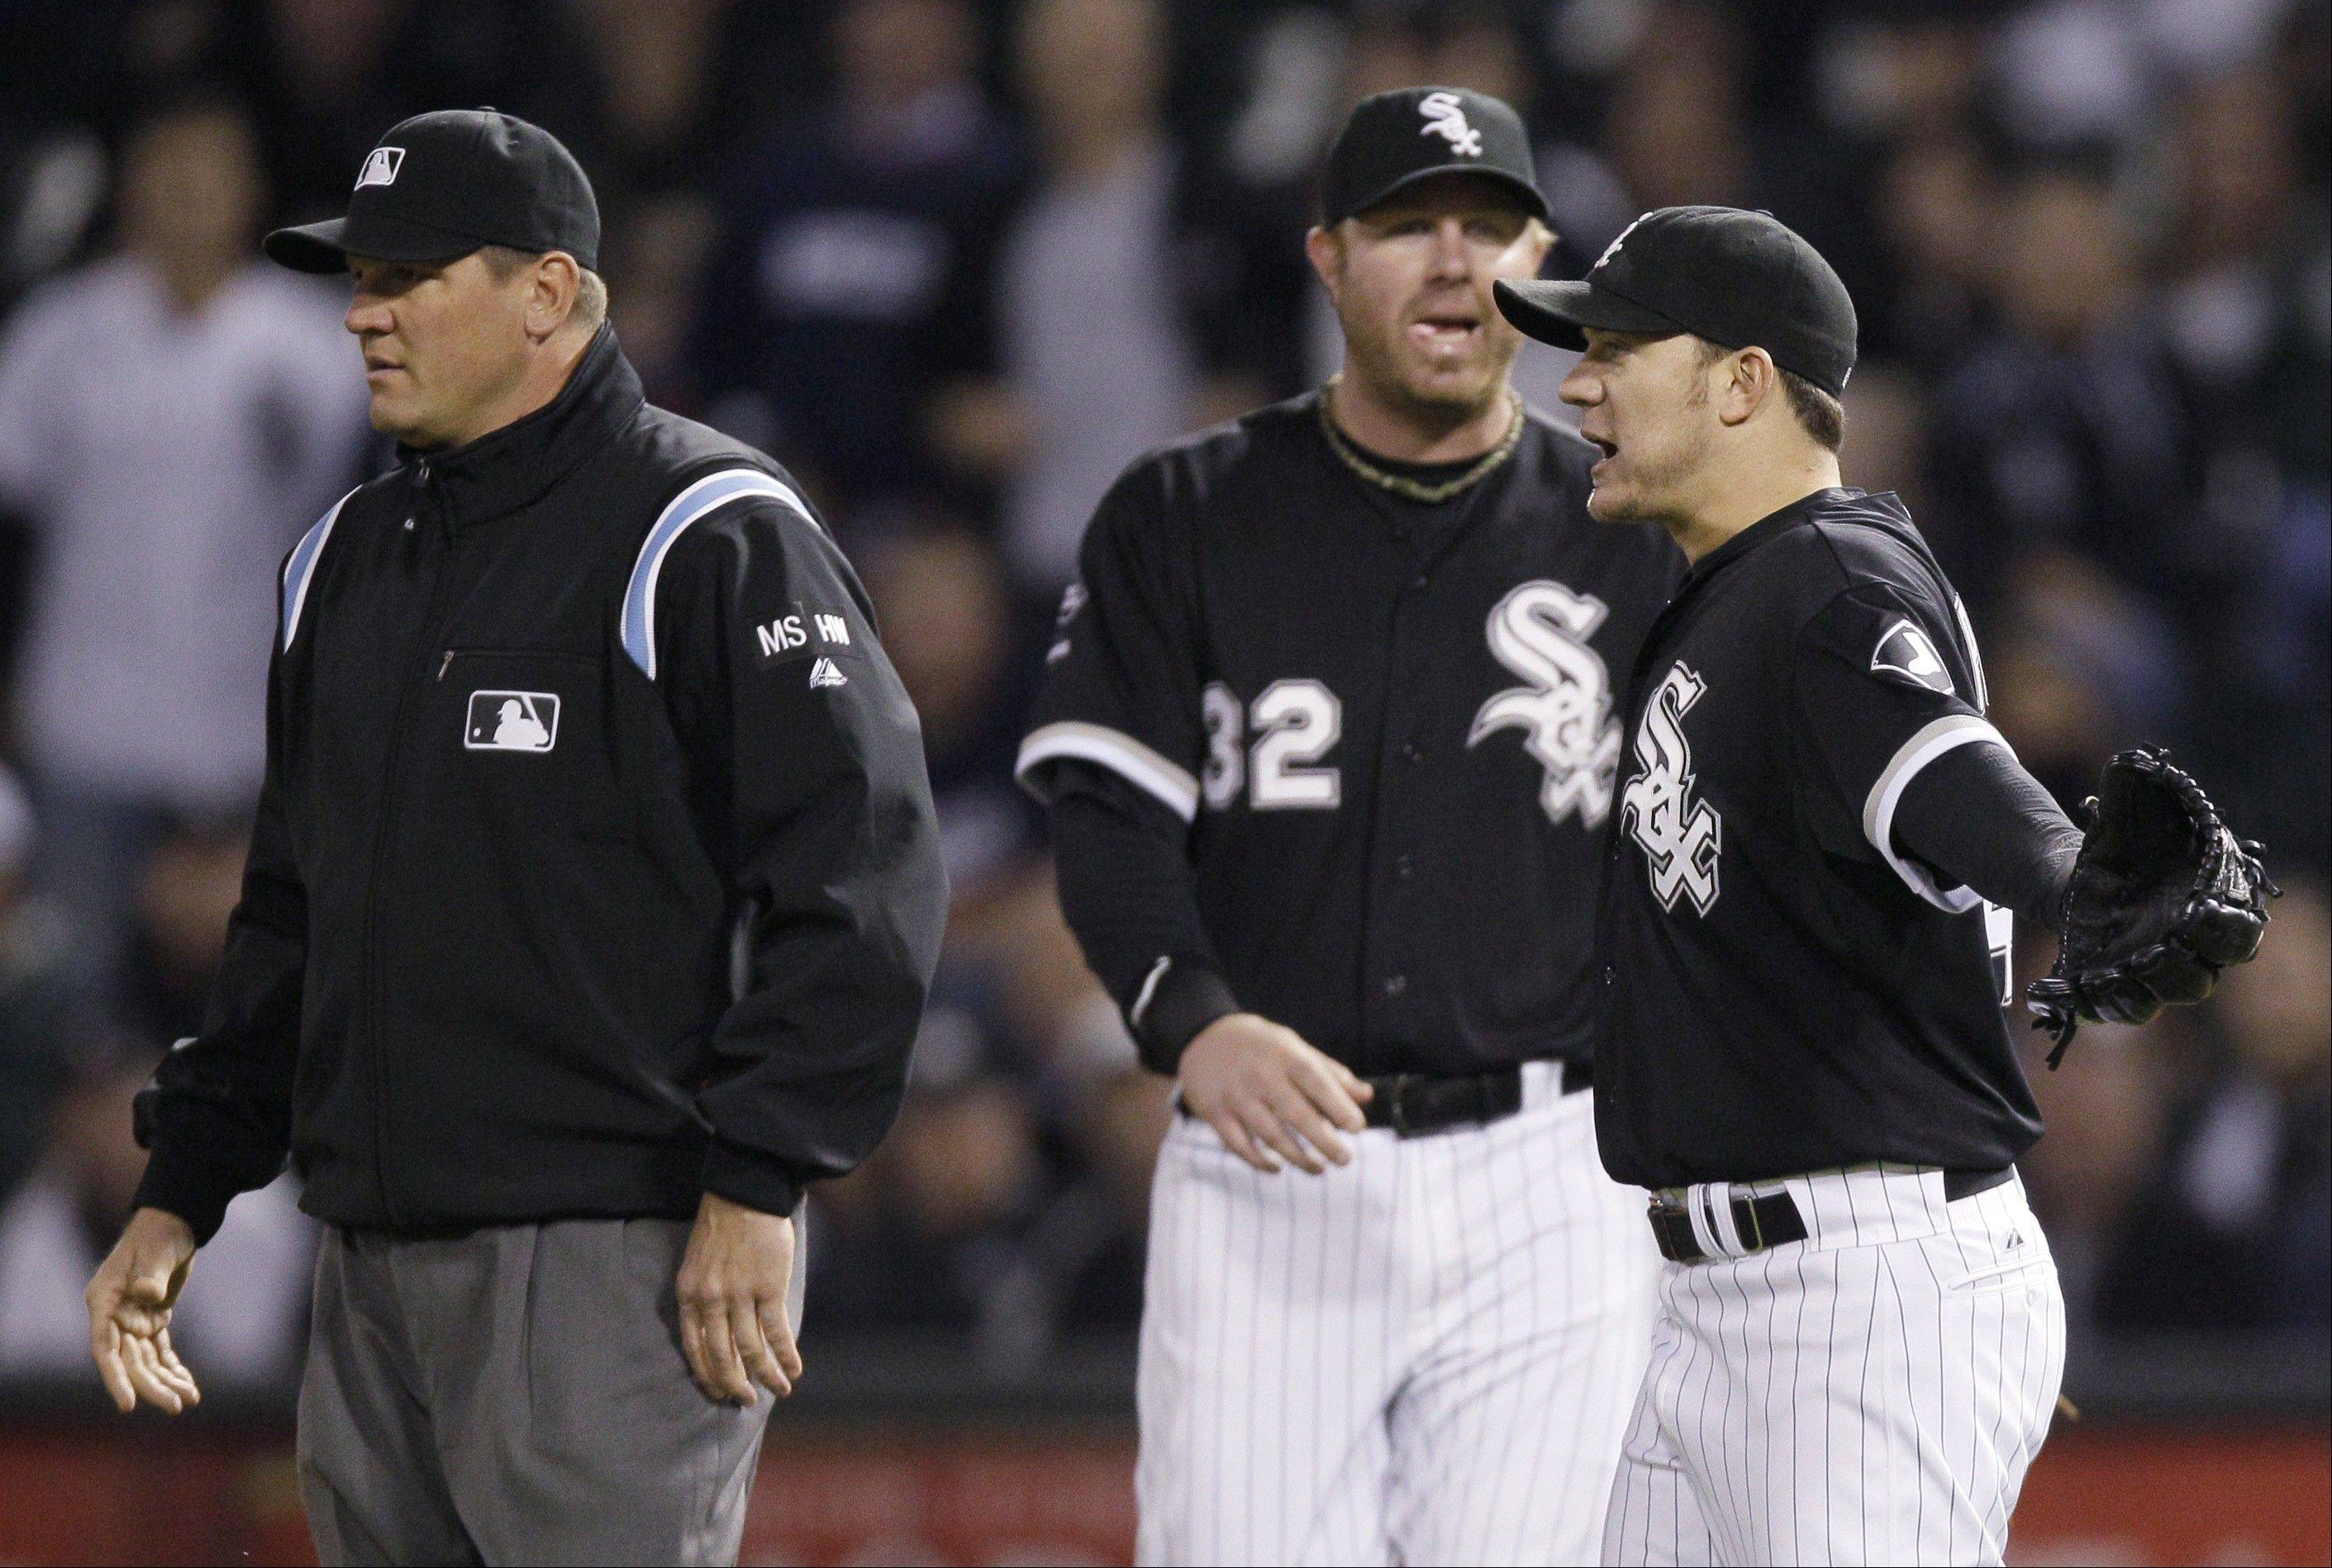 White Sox pitcher Jake Peavy reacts Thursday after being ca